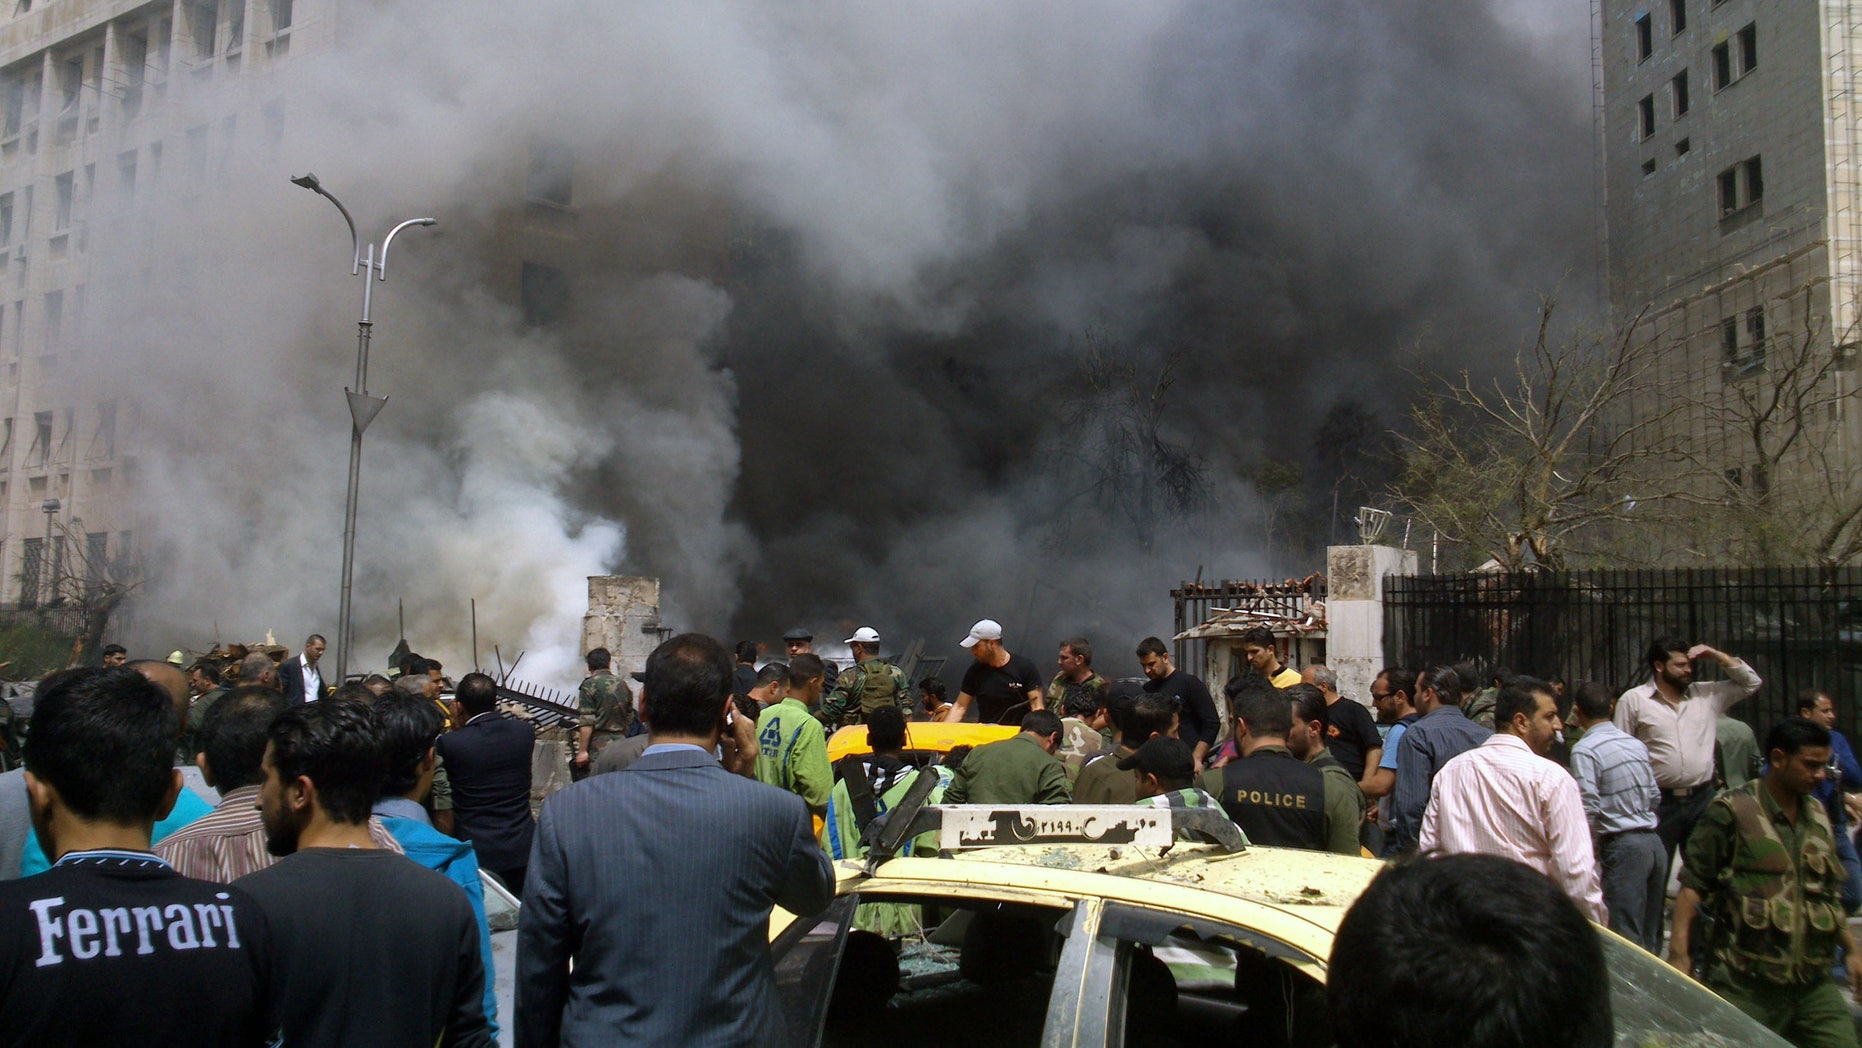 April. 8, 2013: This photo released by the Syrian official news agency SANA, shows smoke rising from burned cars after a huge explosion shook the Sabaa Bahrat Square, one of the capital's biggest roundabouts, in Damascus, Syria. A car bomb rocked a busy residential and commercial district in central Damascus on Monday, killing more than a dozen with many more injured and sending a huge cloud of black smoke billowing over the capital's skyline, Syrian state-run media said.